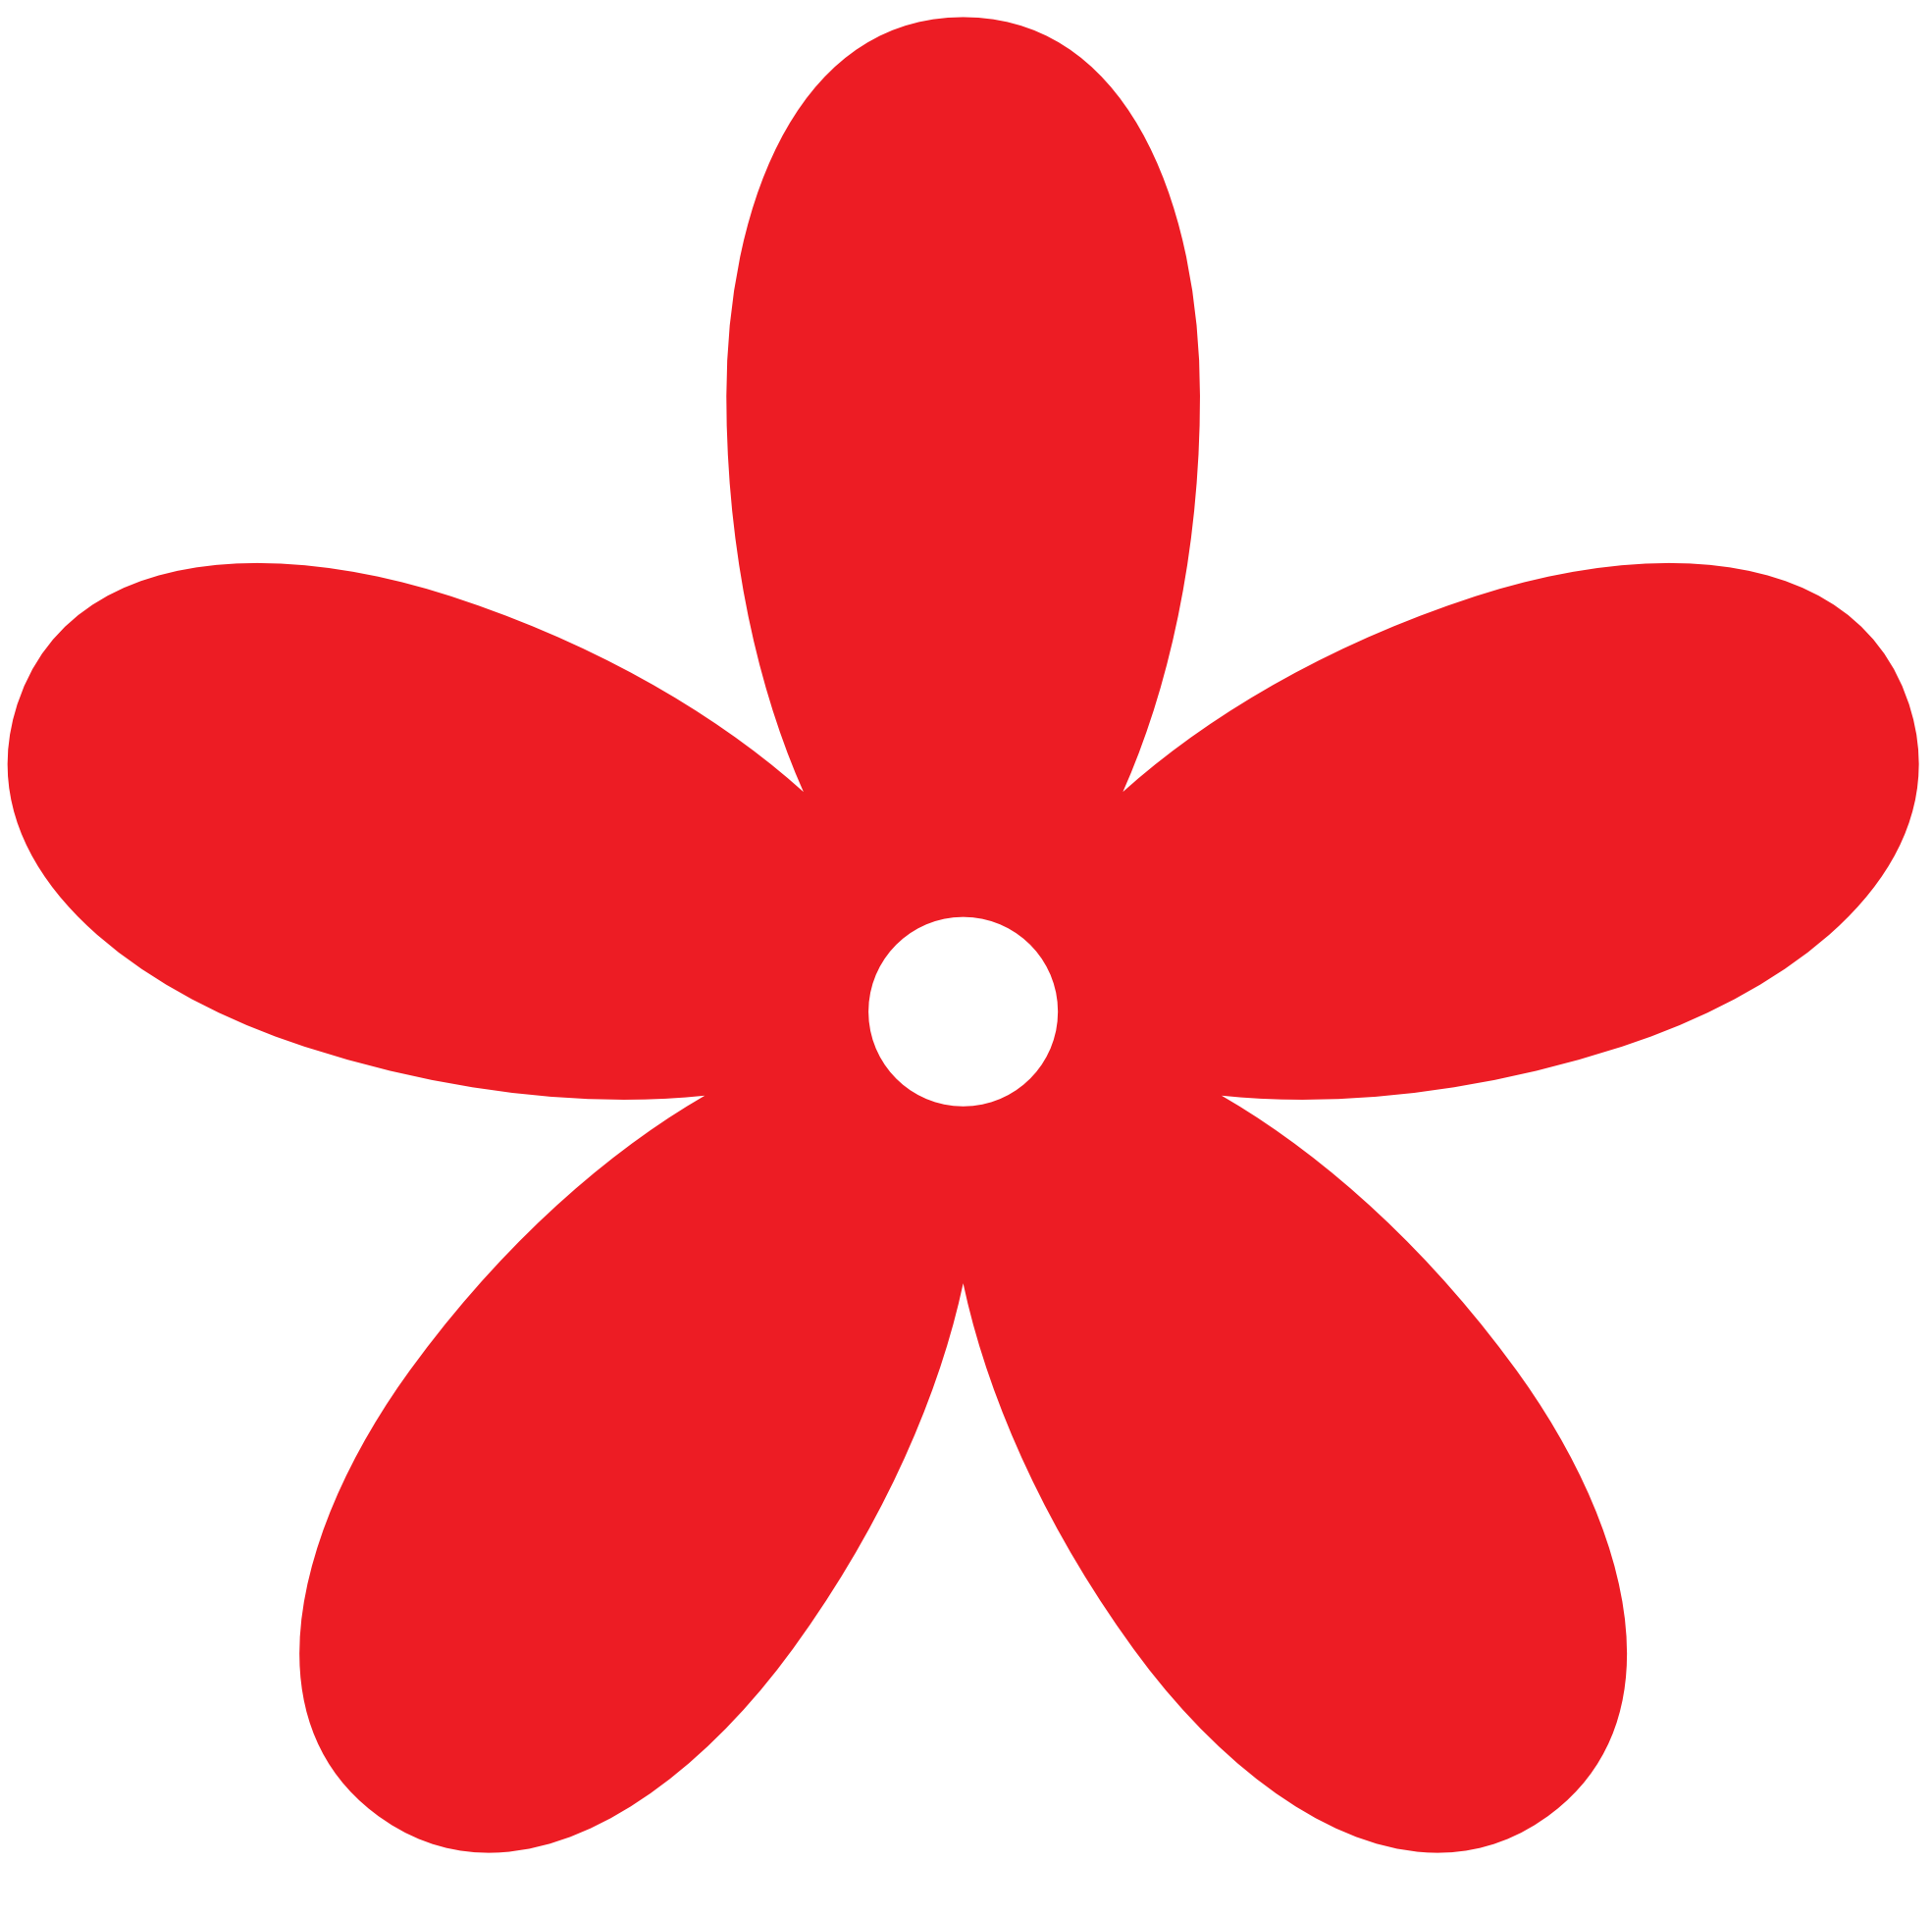 Tiny Red Flower Clip Art